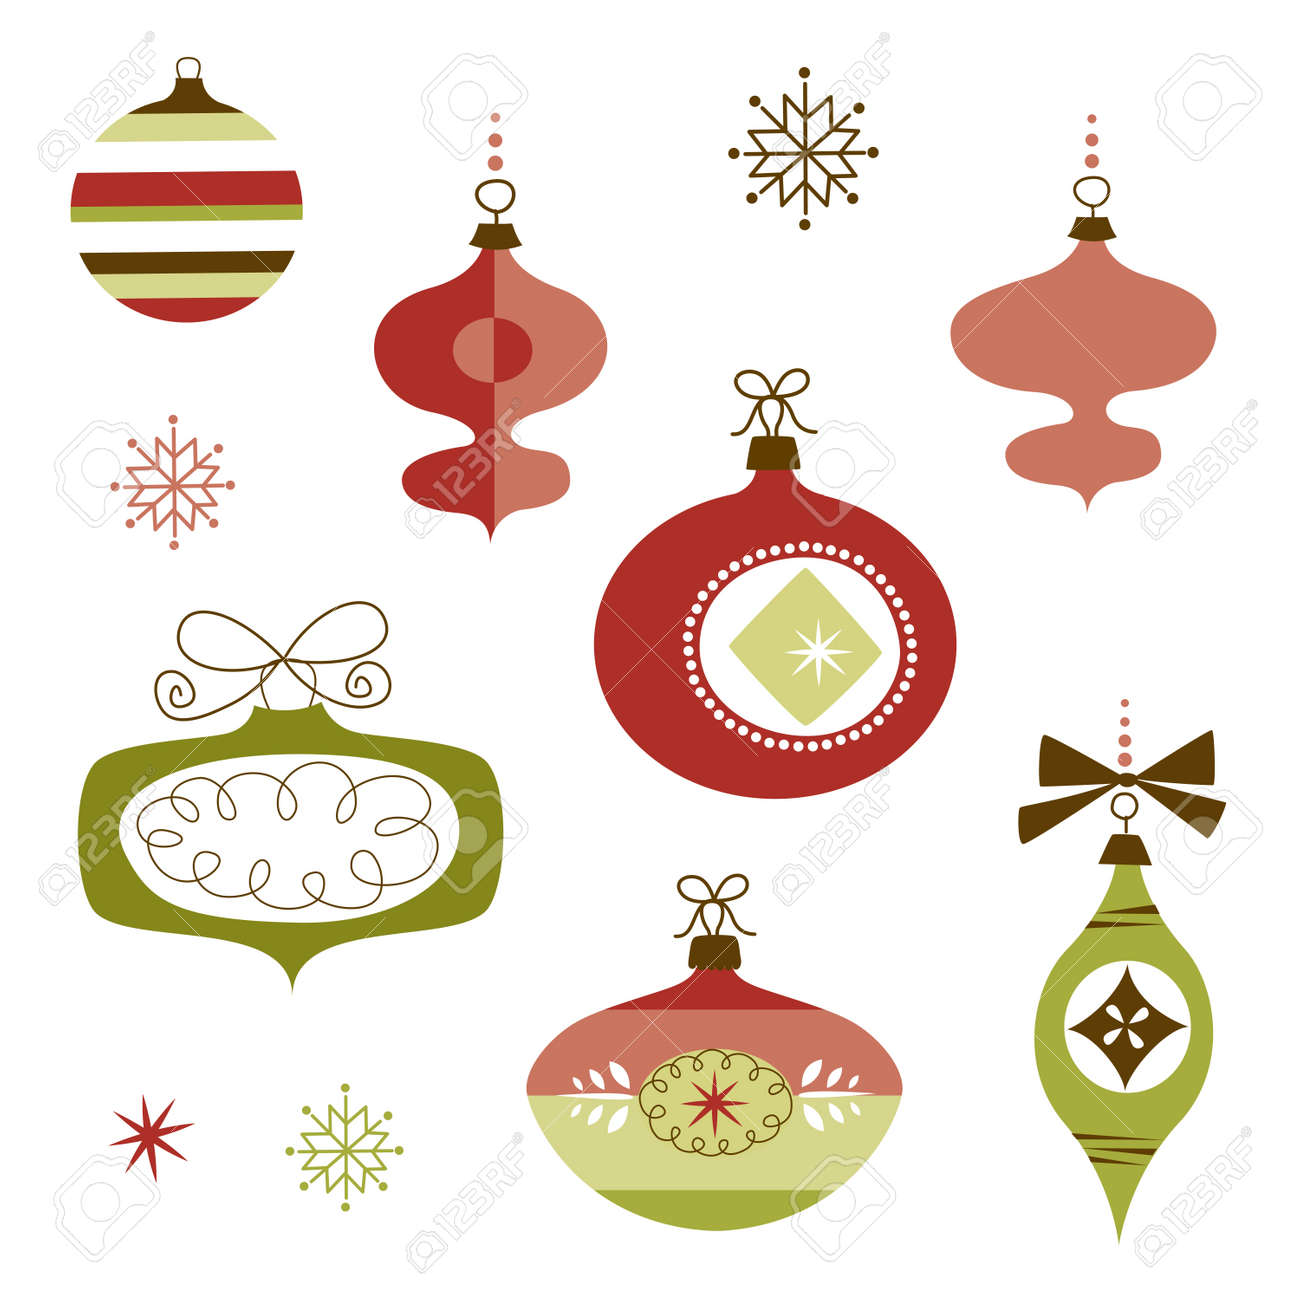 Set Of Retro Christmas Ornaments Royalty Free Cliparts, Vectors ...